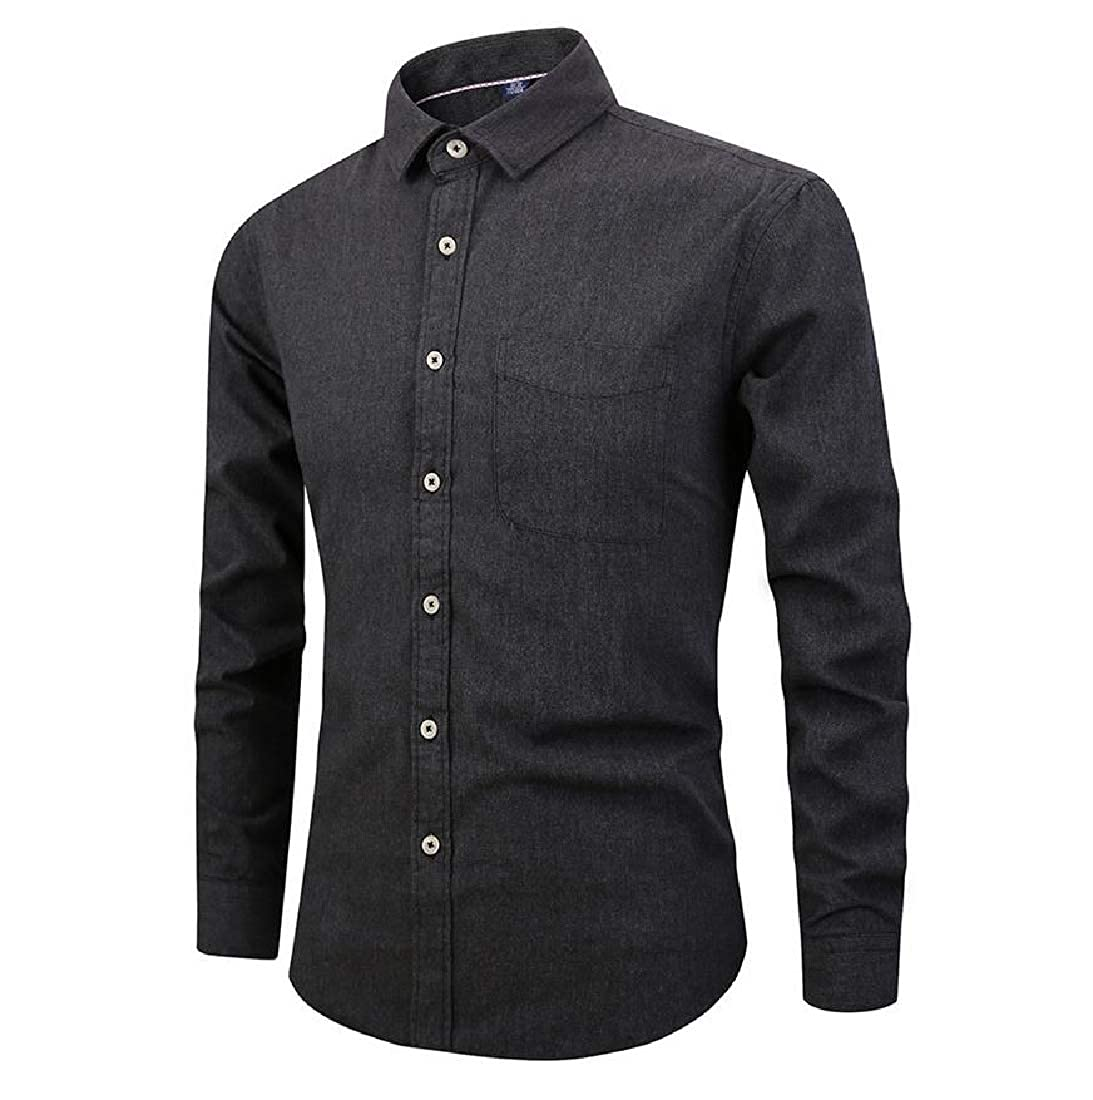 Abetteric Men Solid Colored Brushed Casual Long-Sleeve No Iron Dress Shirt